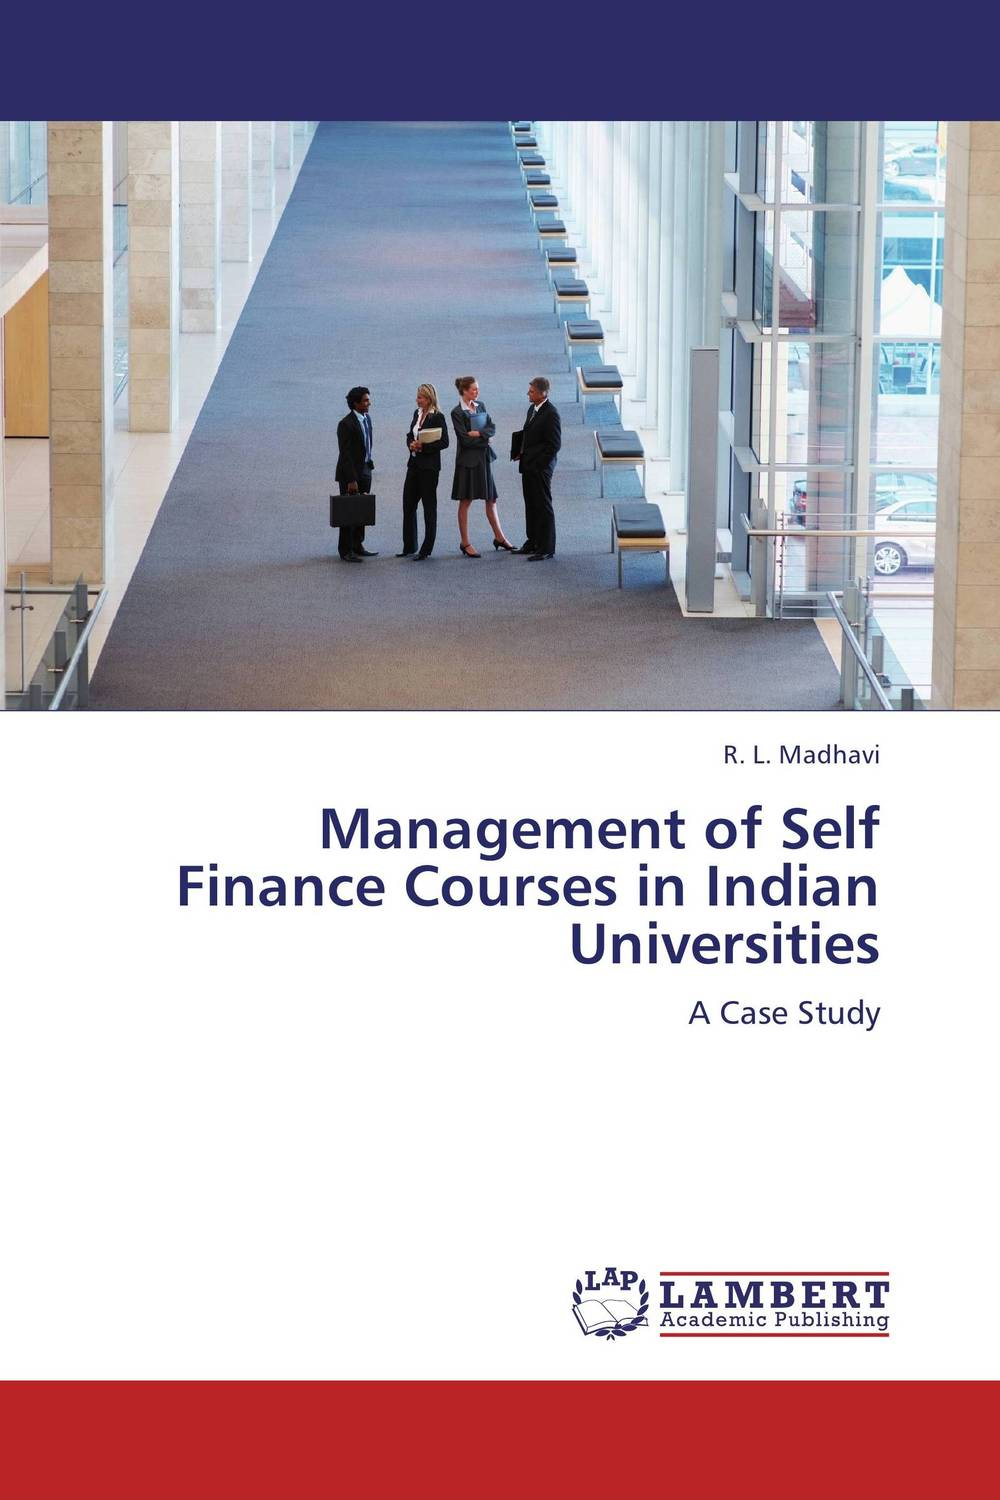 купить Management of Self Finance Courses in Indian Universities по цене 5576 рублей